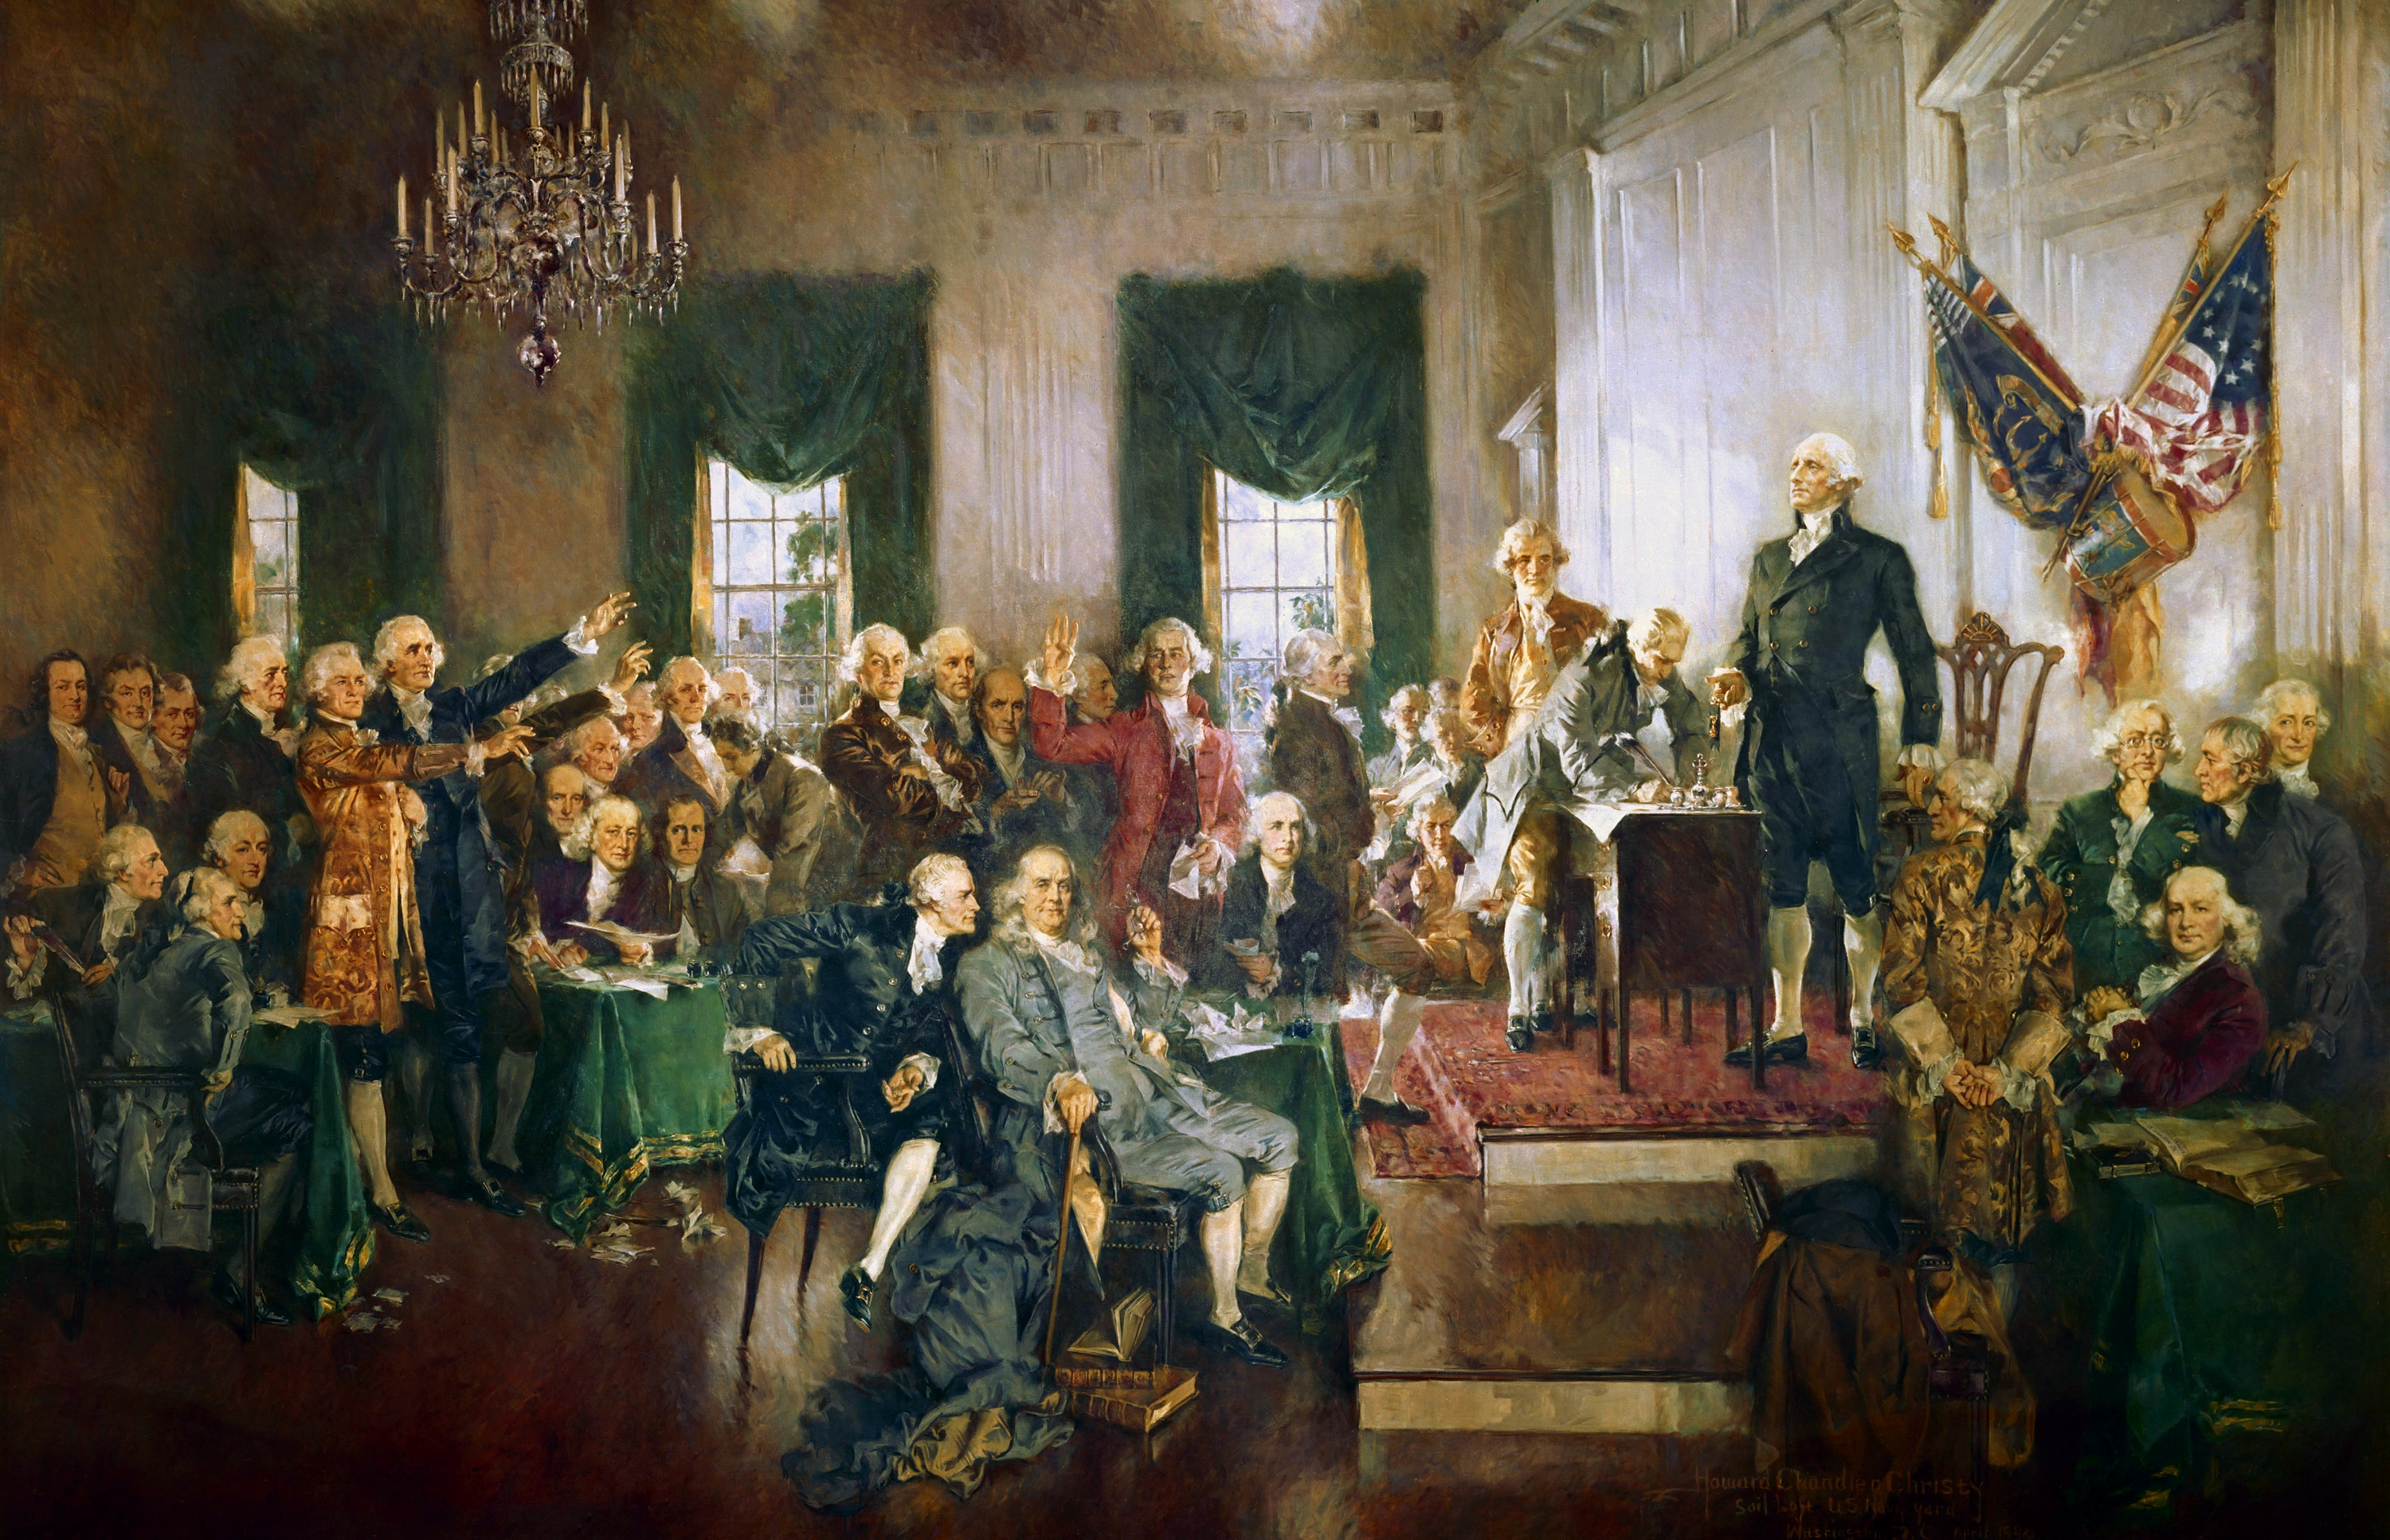 Signing of the U.S. Constitutionby Howard Chandler Christy, 1940